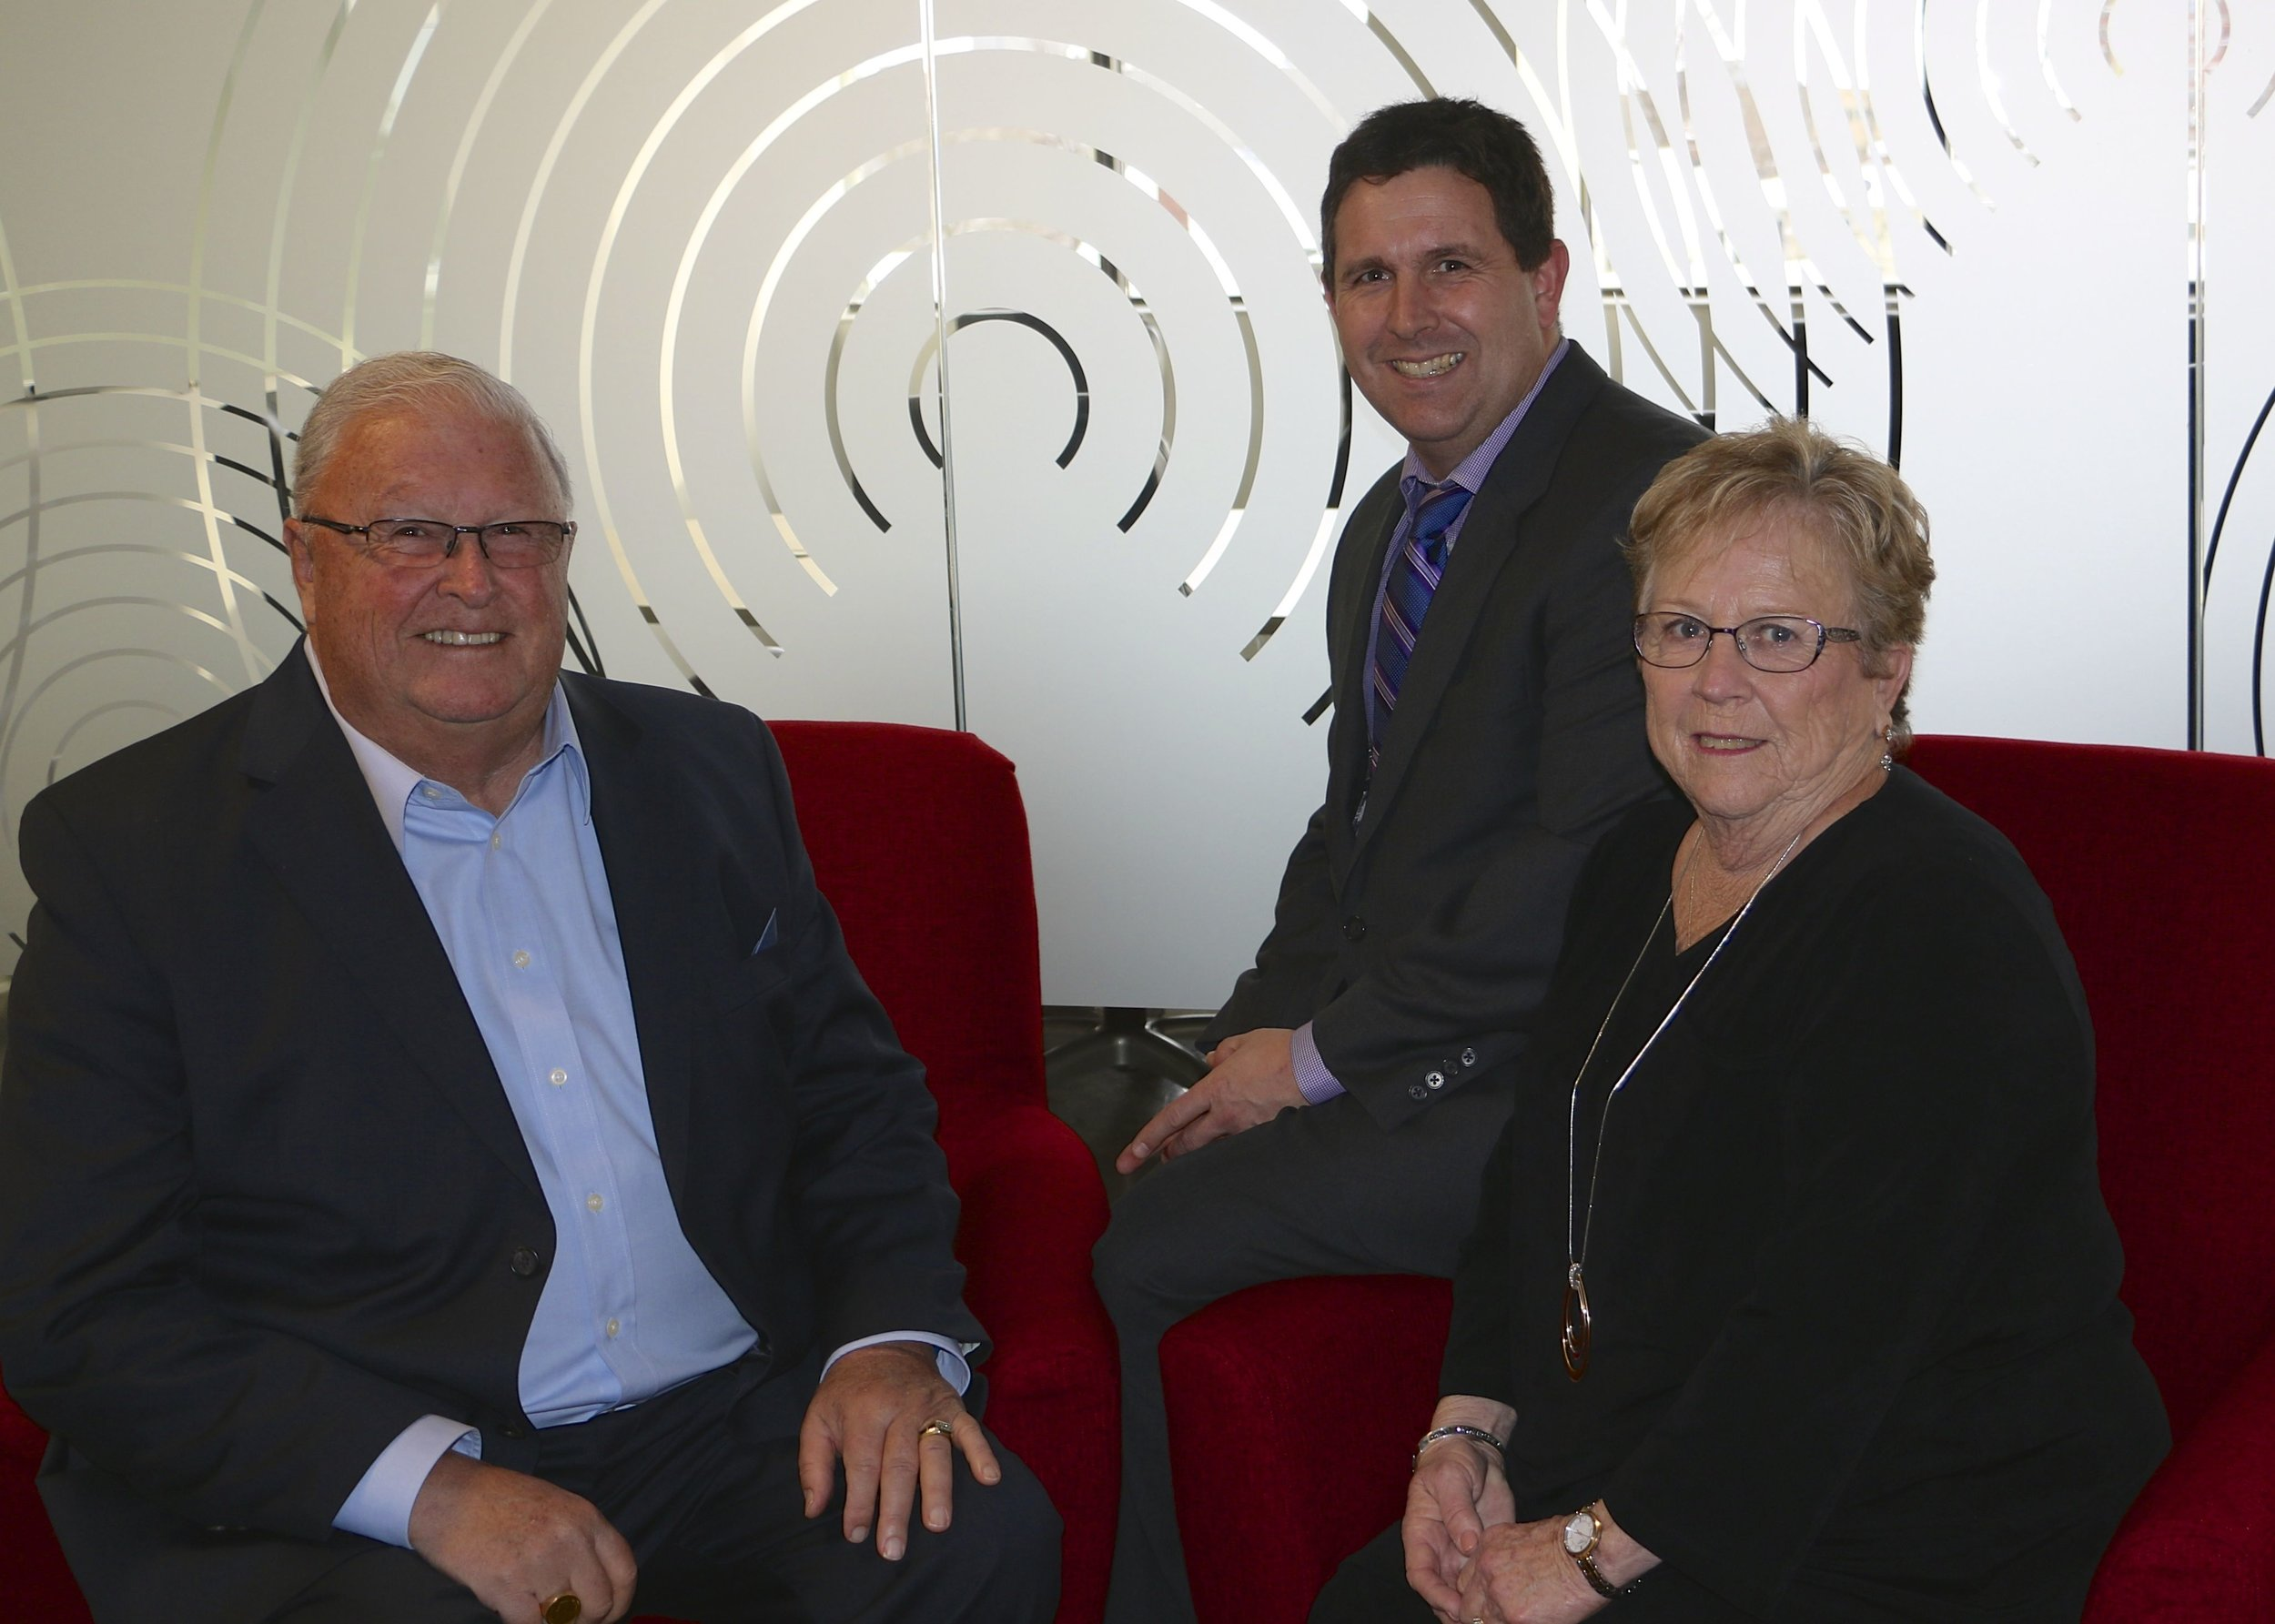 Brad French, President, with previous owners Jack & Marie French